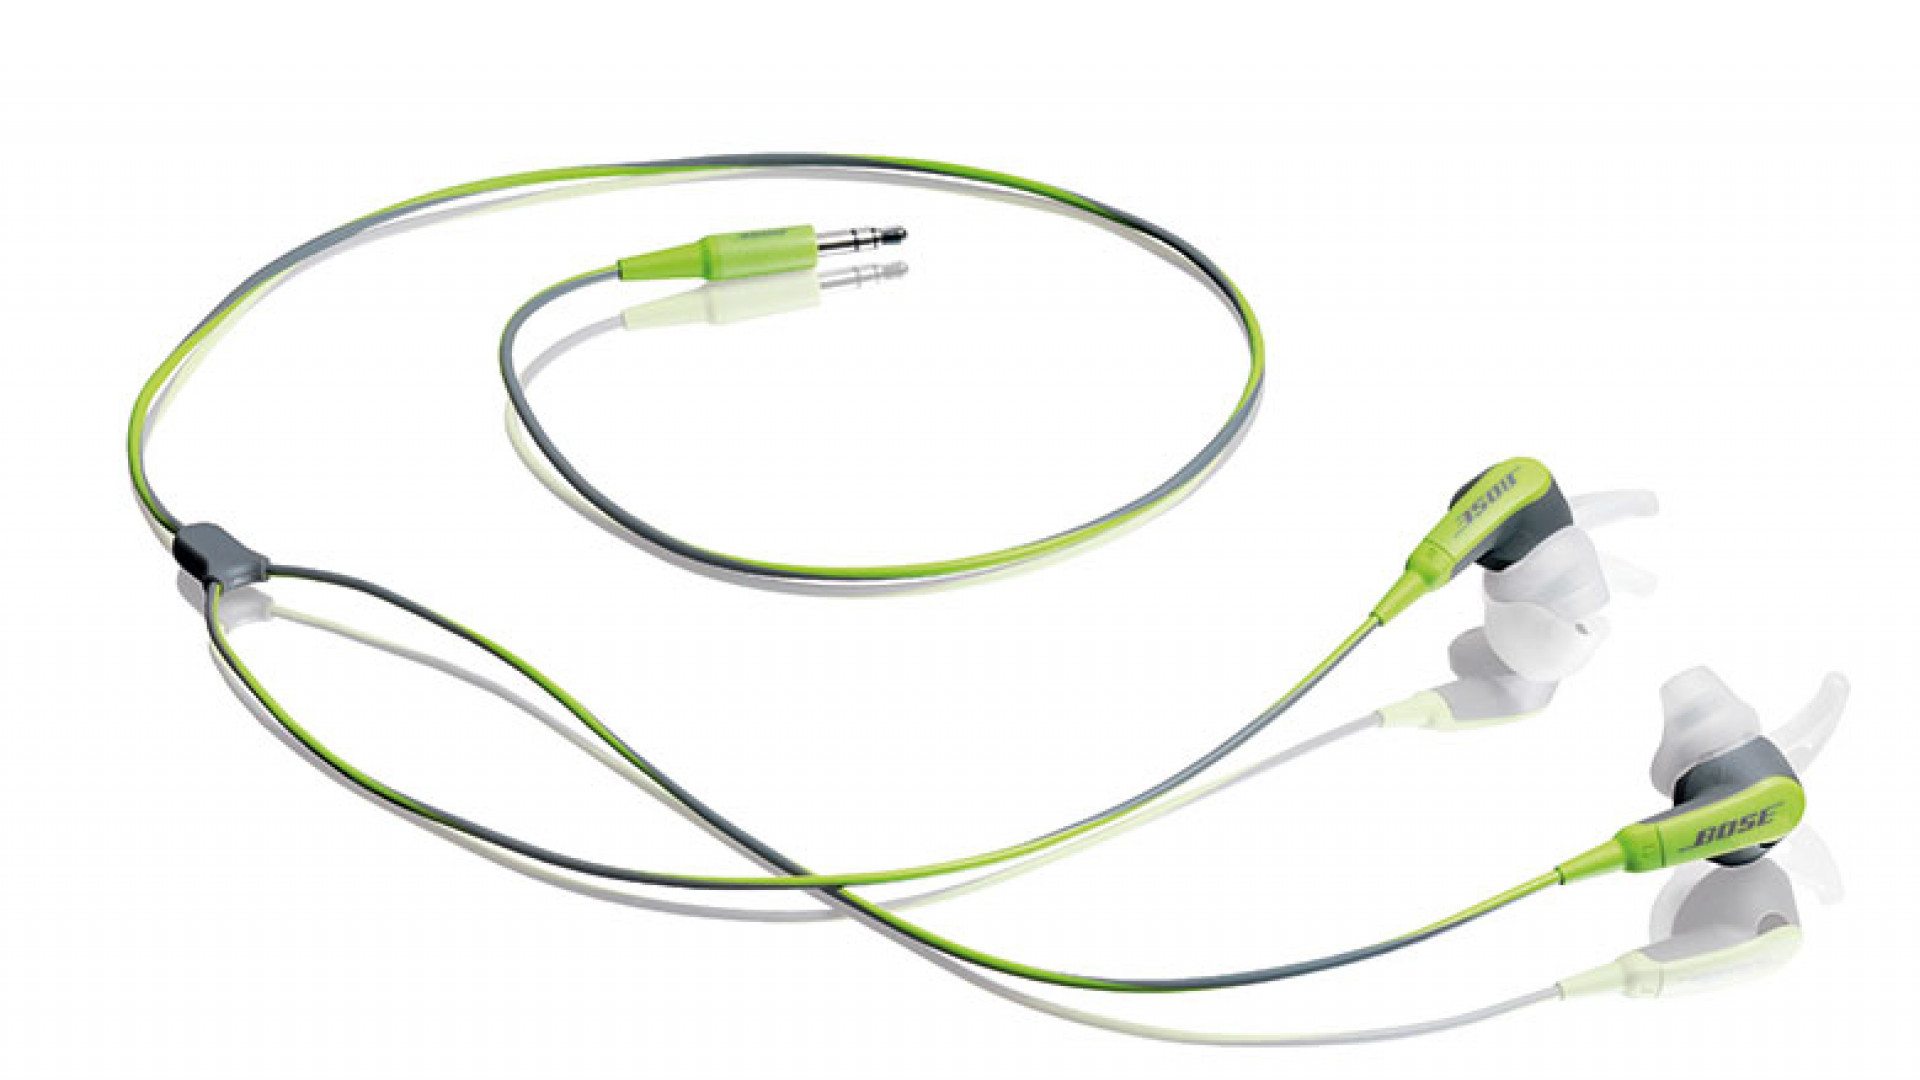 Bose_SIE2_Headphones_003_HR-55